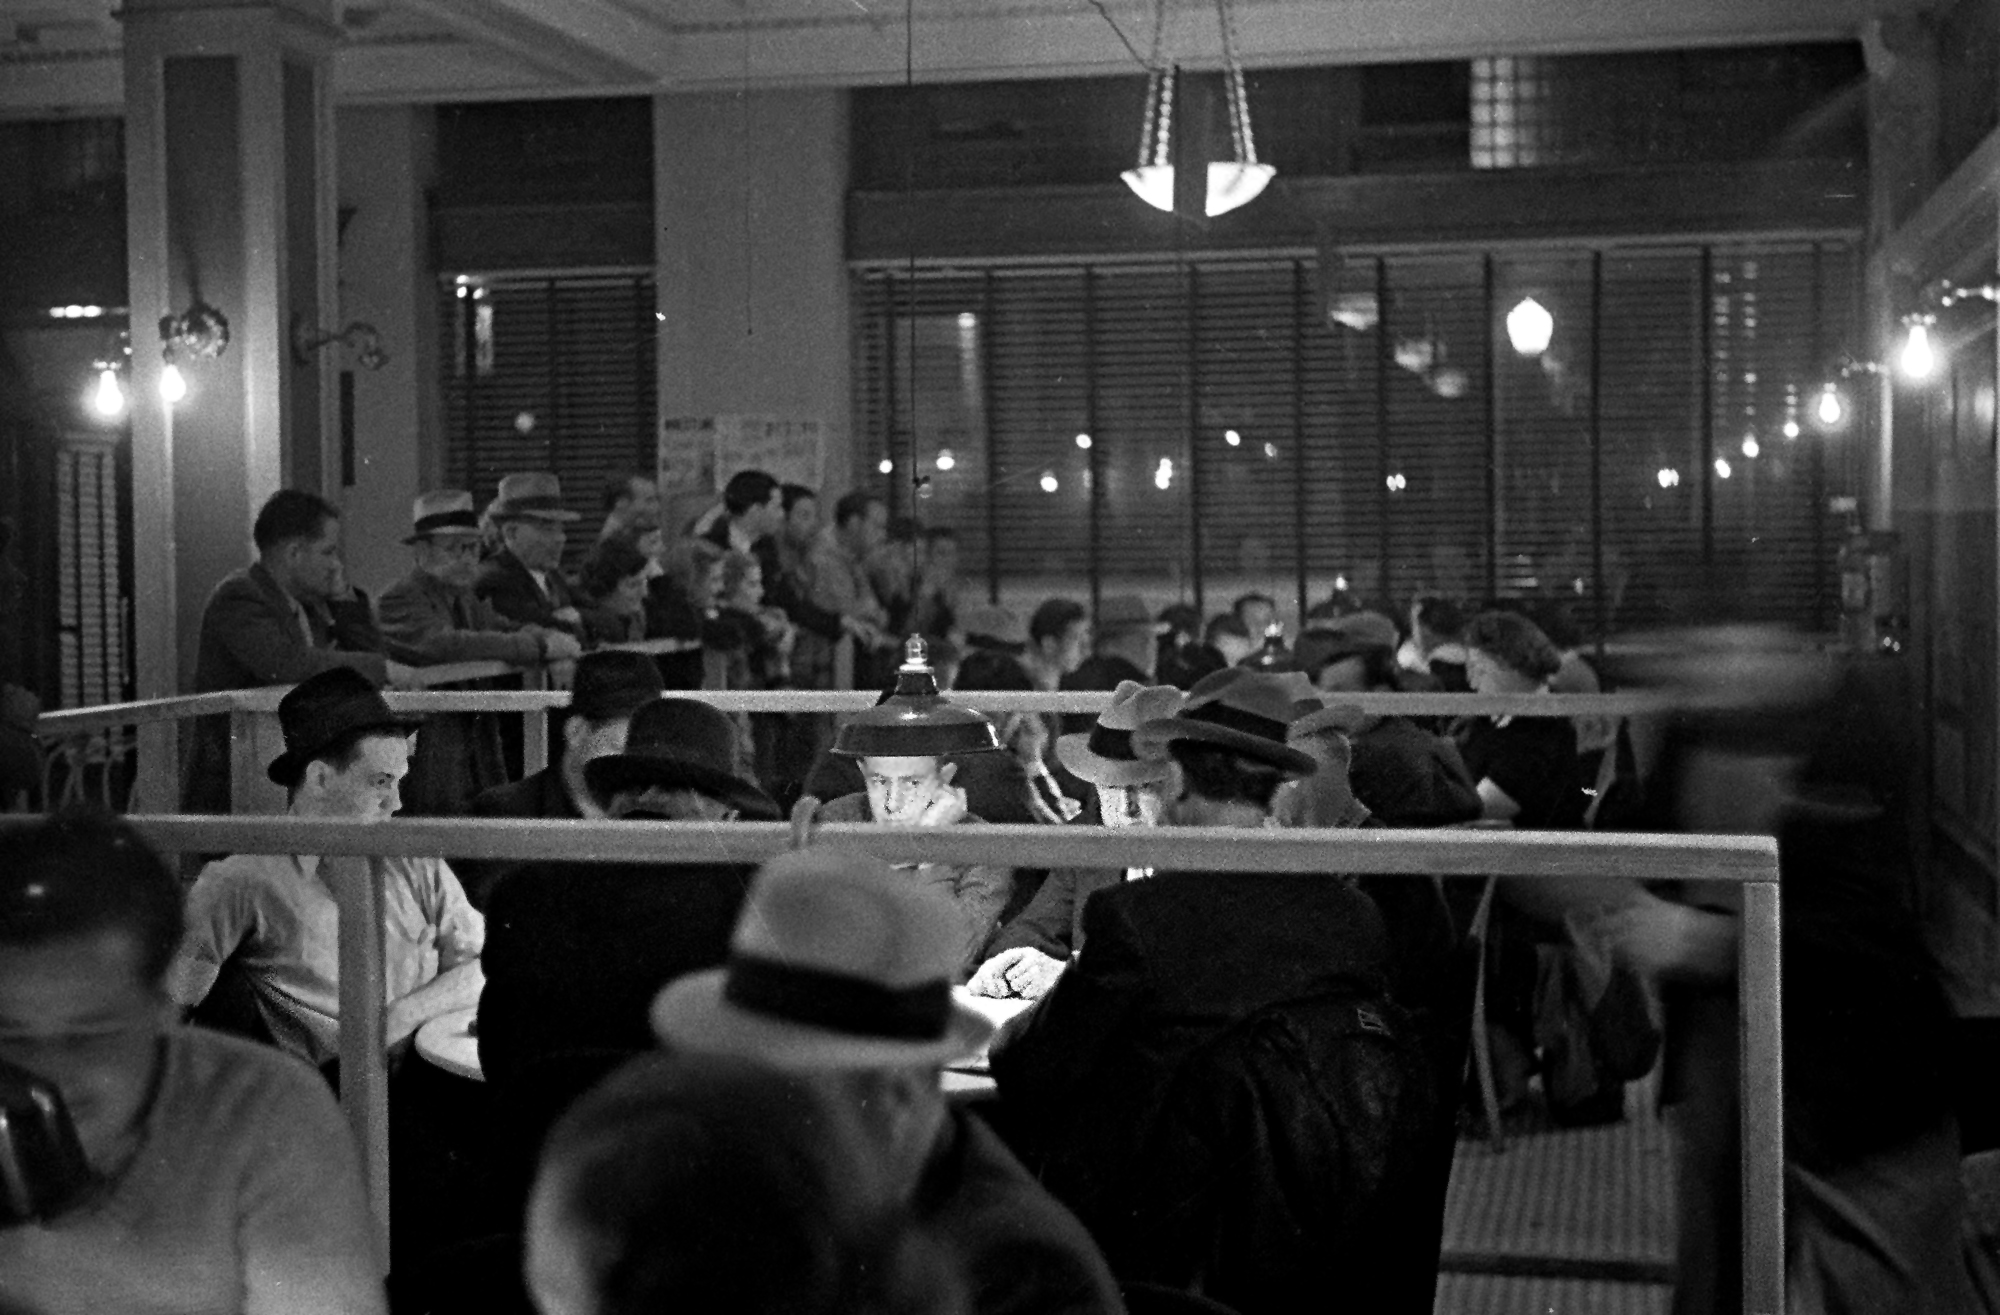 Gamblers playing cards, 1937. While other players wait for a seat, poker players watch the deal with various levels of interest.